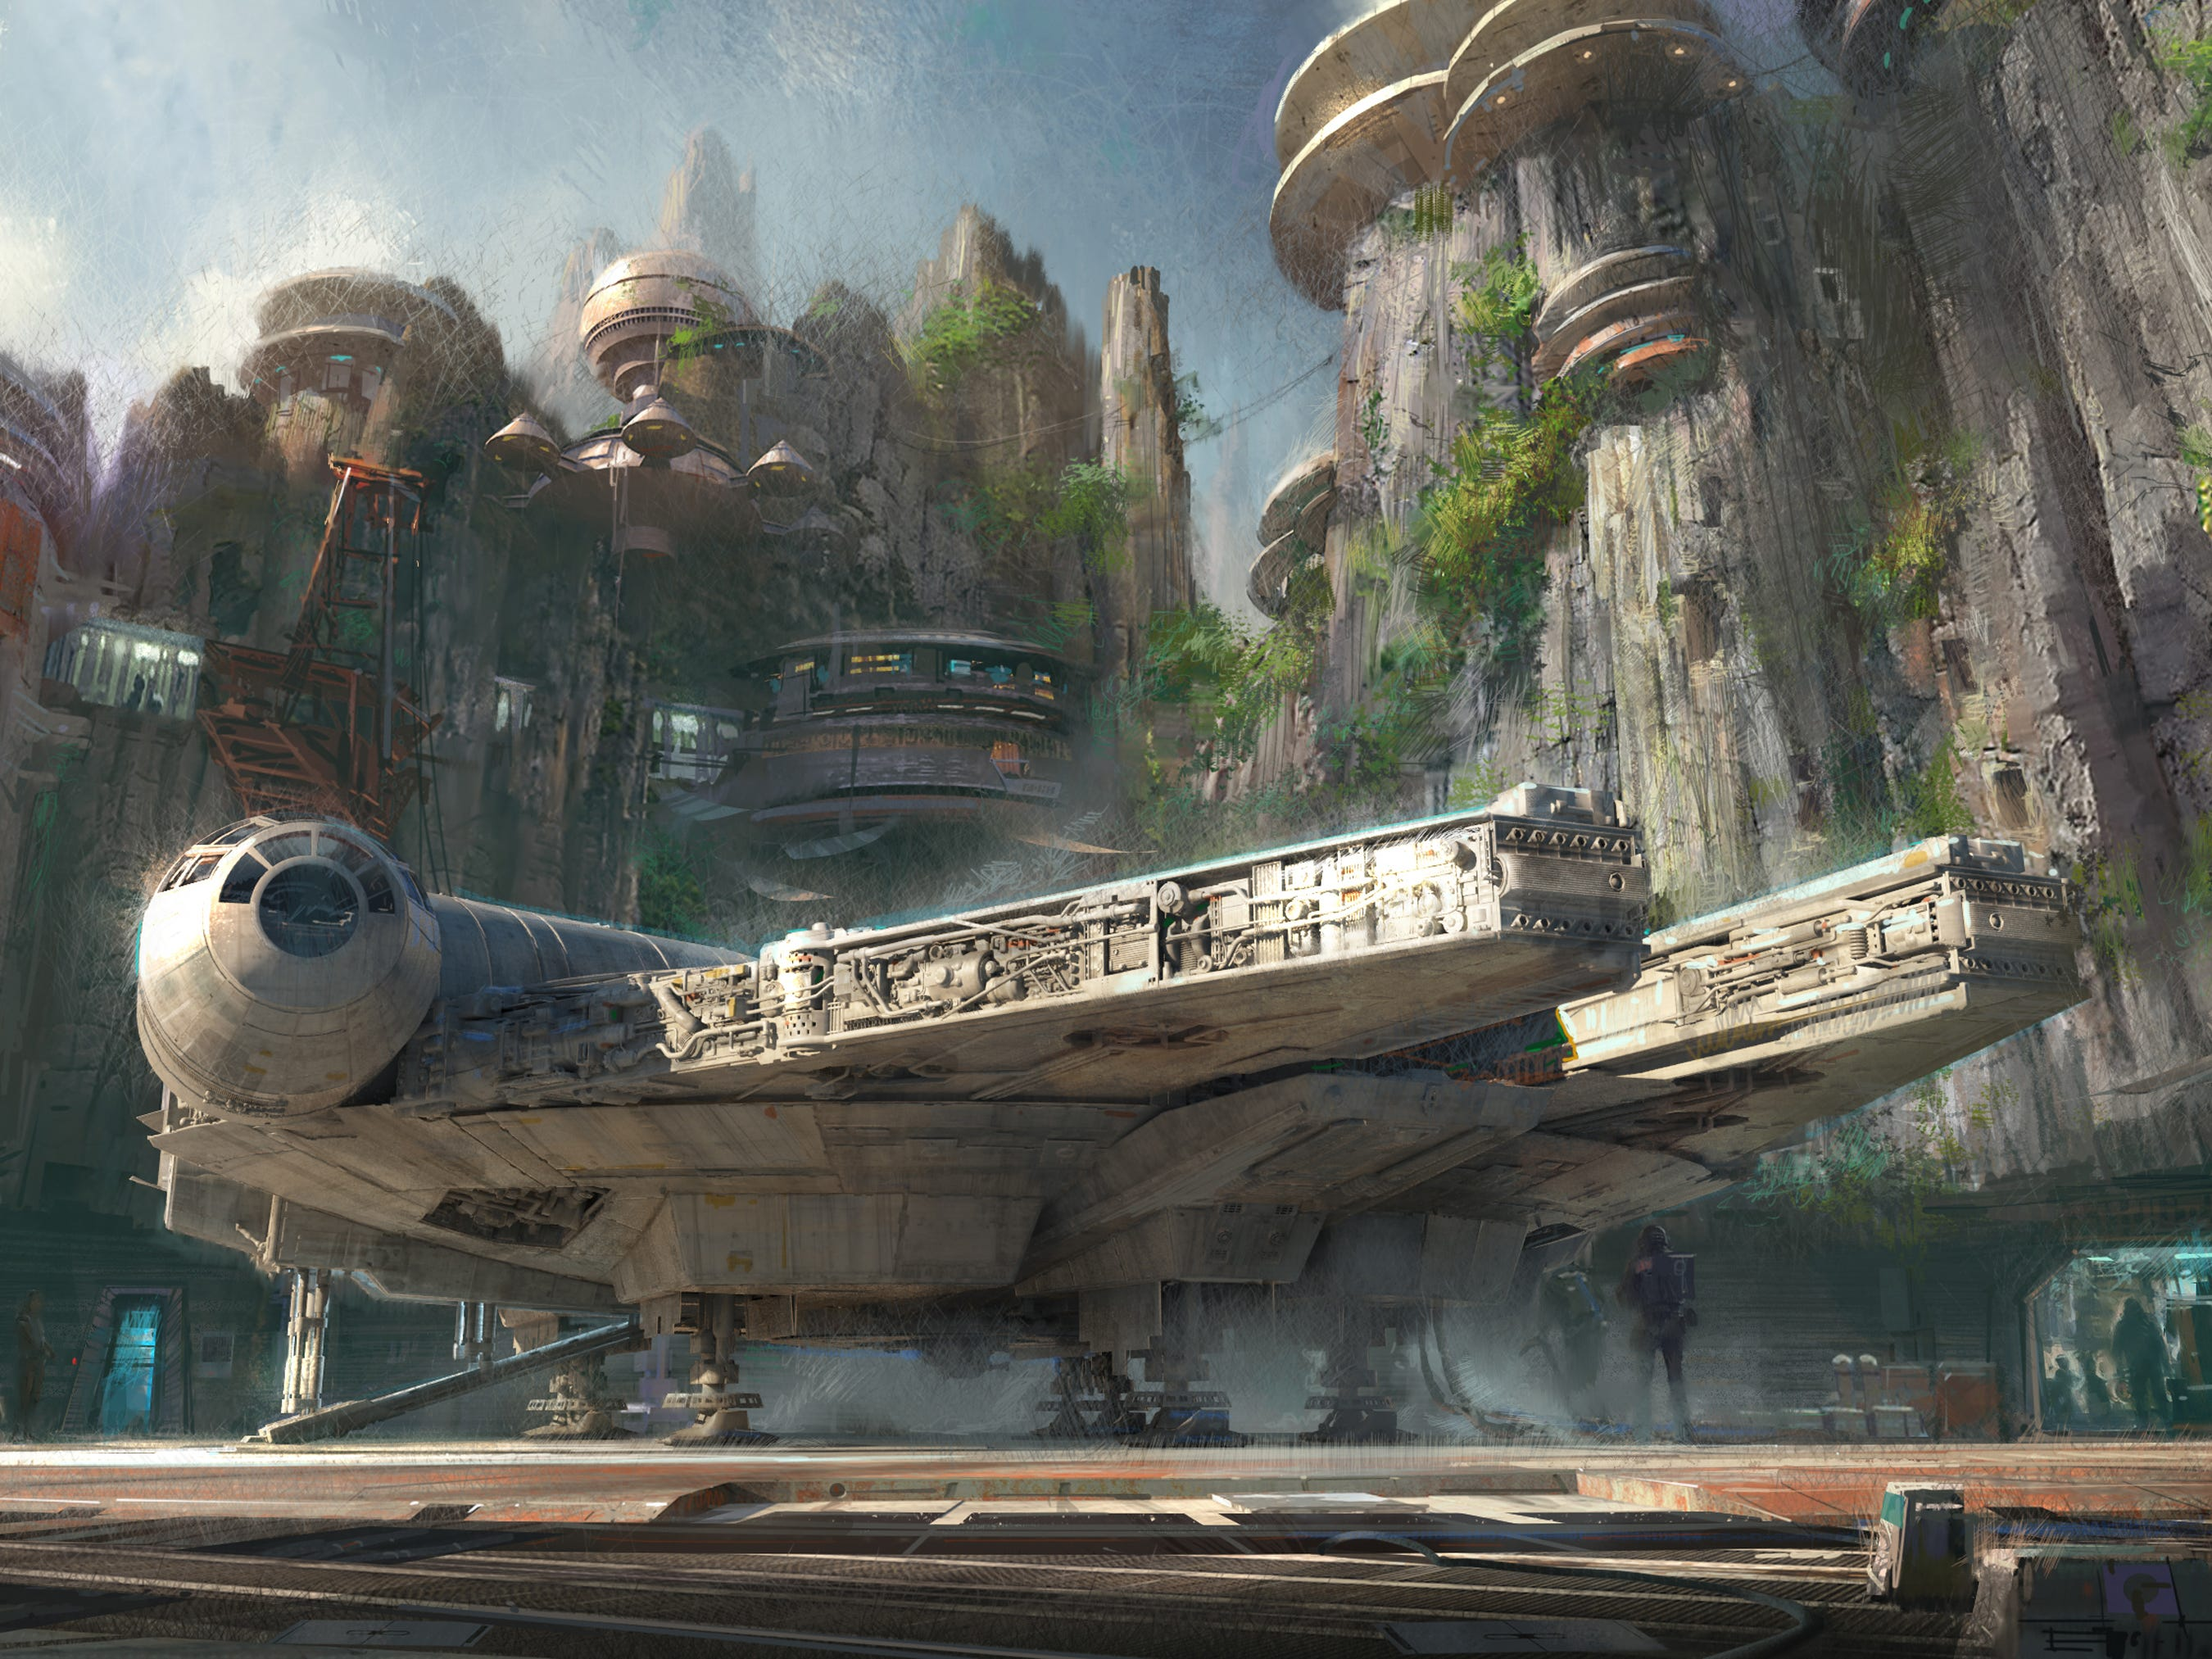 The biggest news in the theme park world for 2019 will be the opening of the Star Wars lands coming to Disneyland in California and Disney's Hollywood Studios in Florida. In one of the attractions, guests will play hands-on roles piloting the famed Millennium Falcon spaceship.